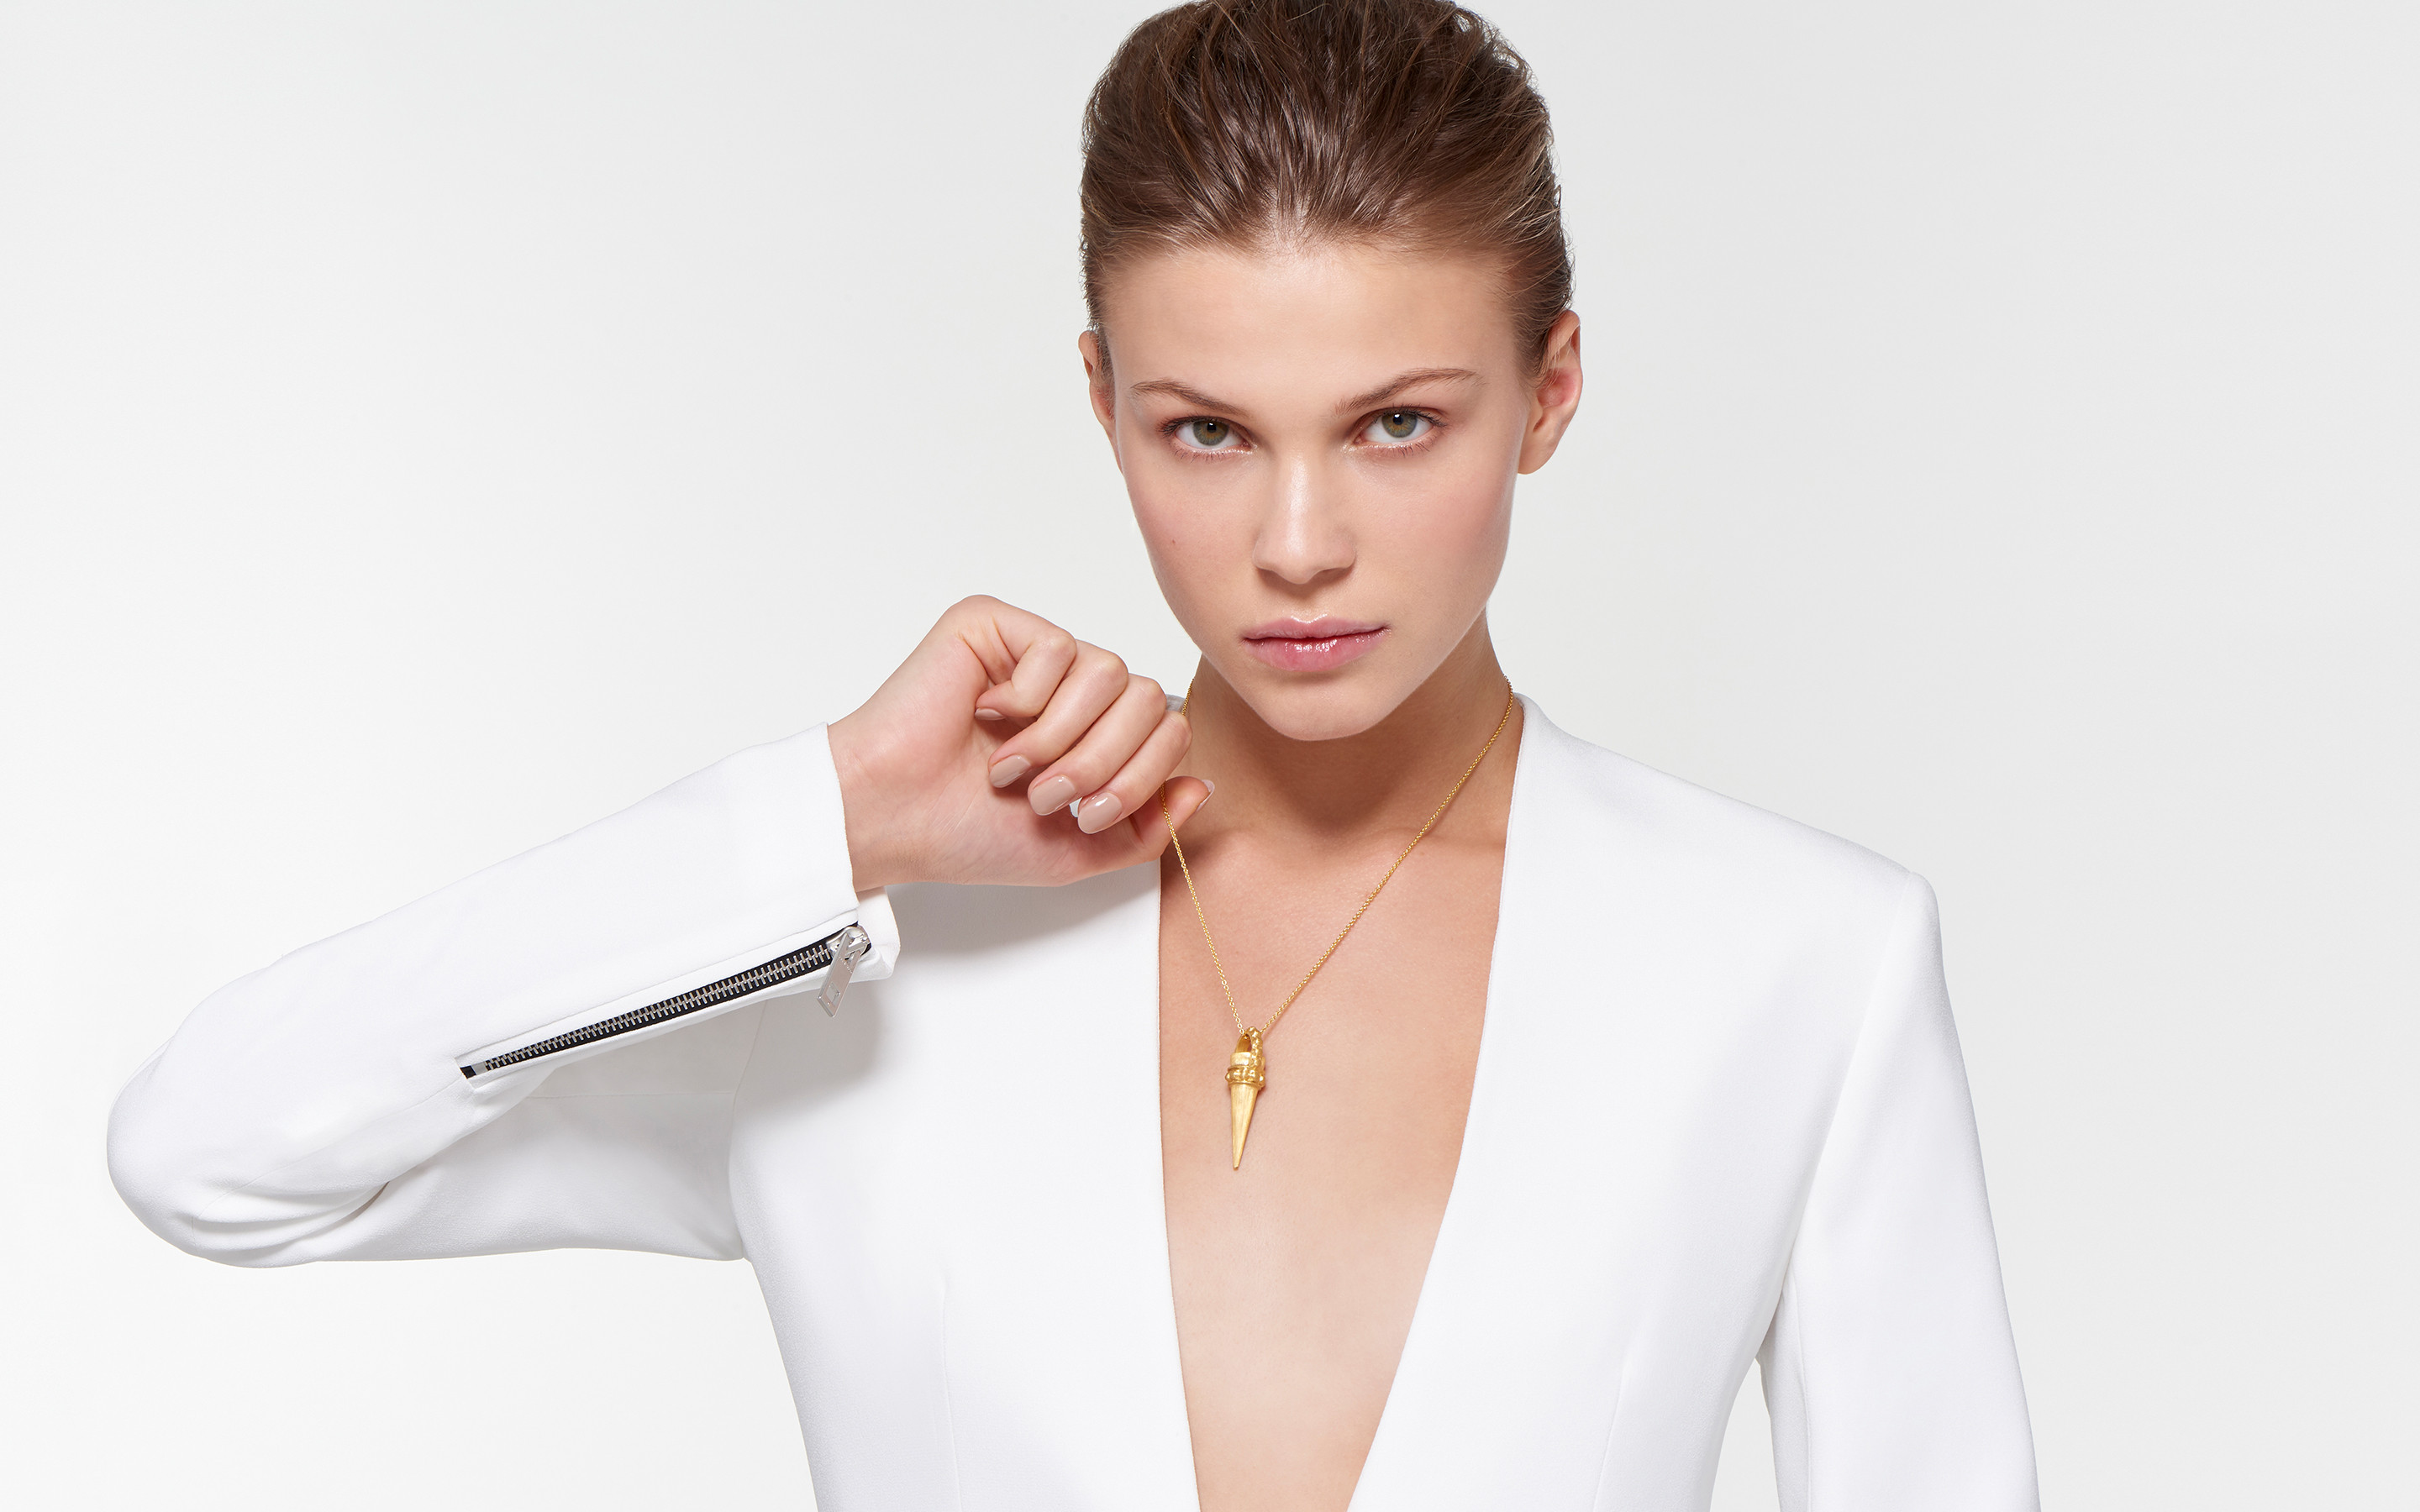 glamorous model showcasing 22 karat gold necklace with modern cone amulet in satin finish